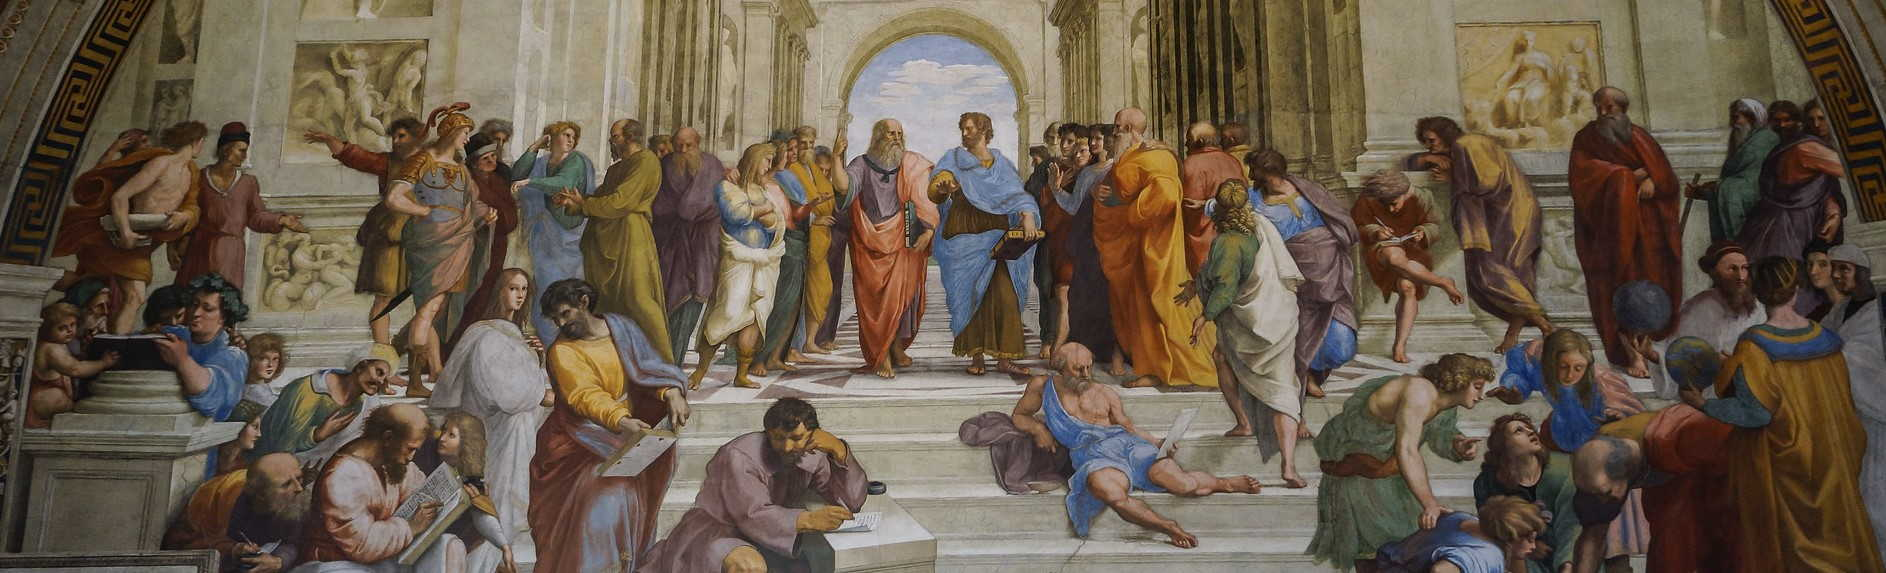 What does the School of Athens represent?